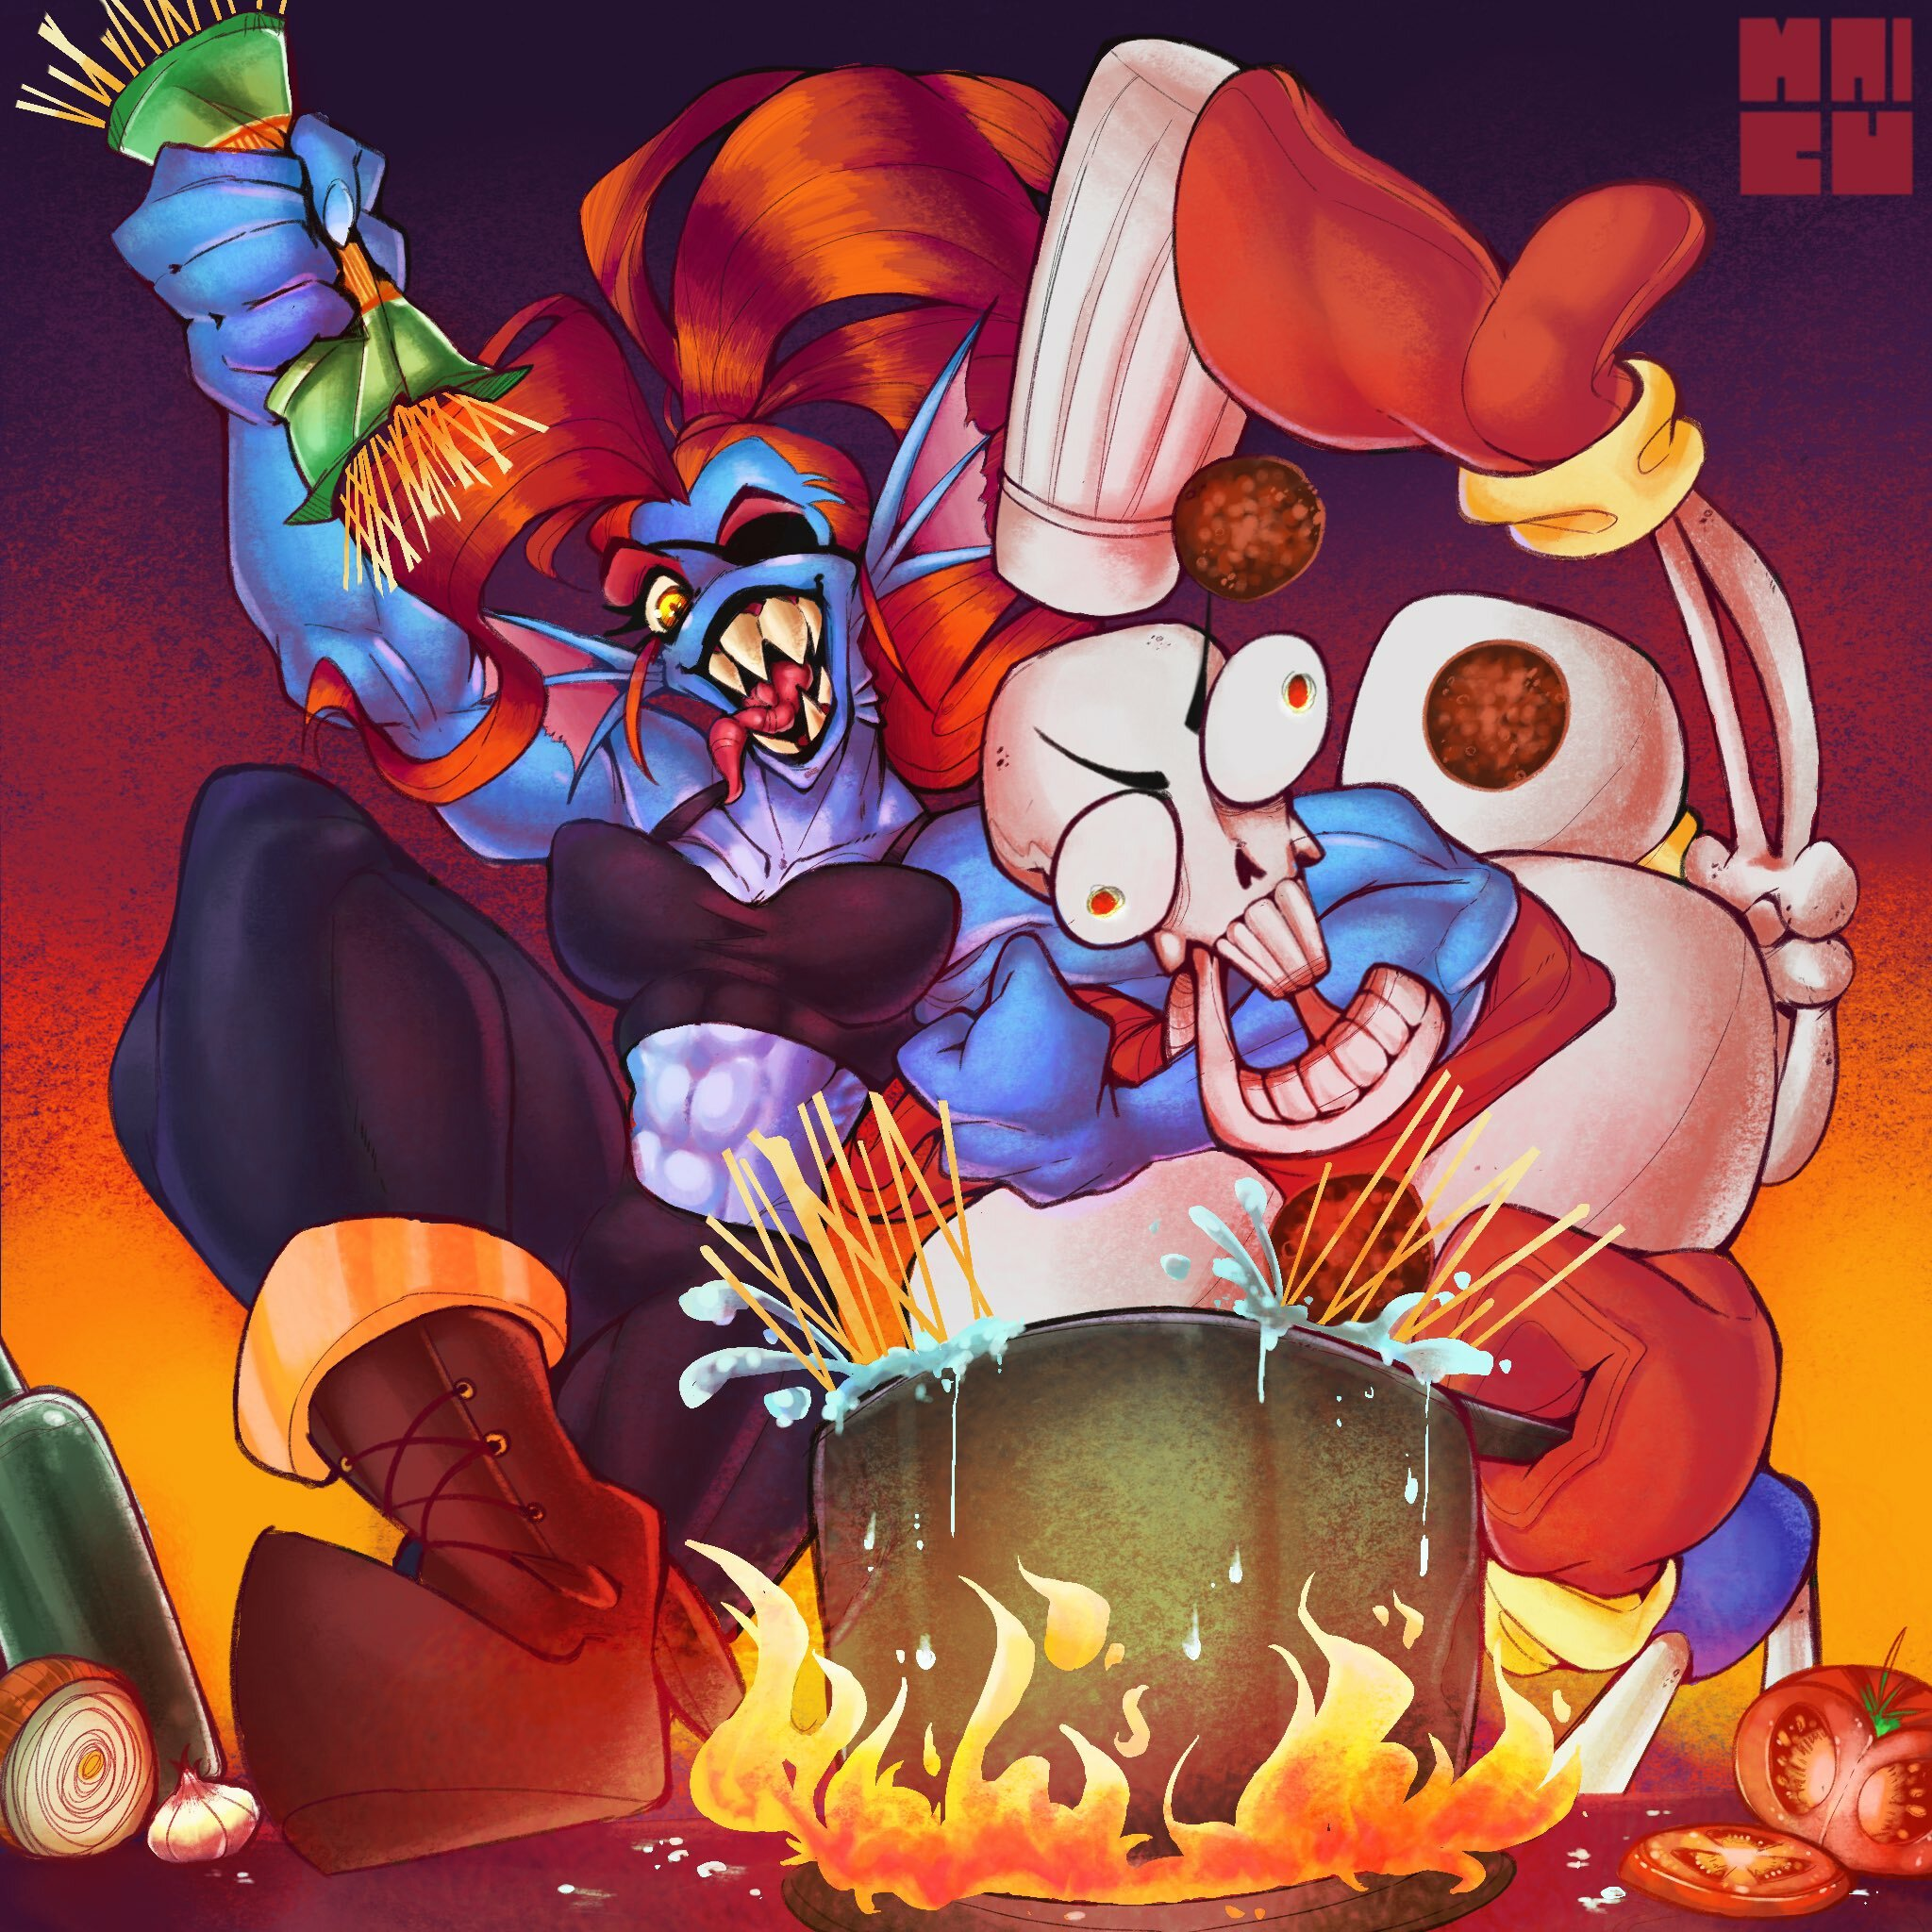 Undyne and Papyrus